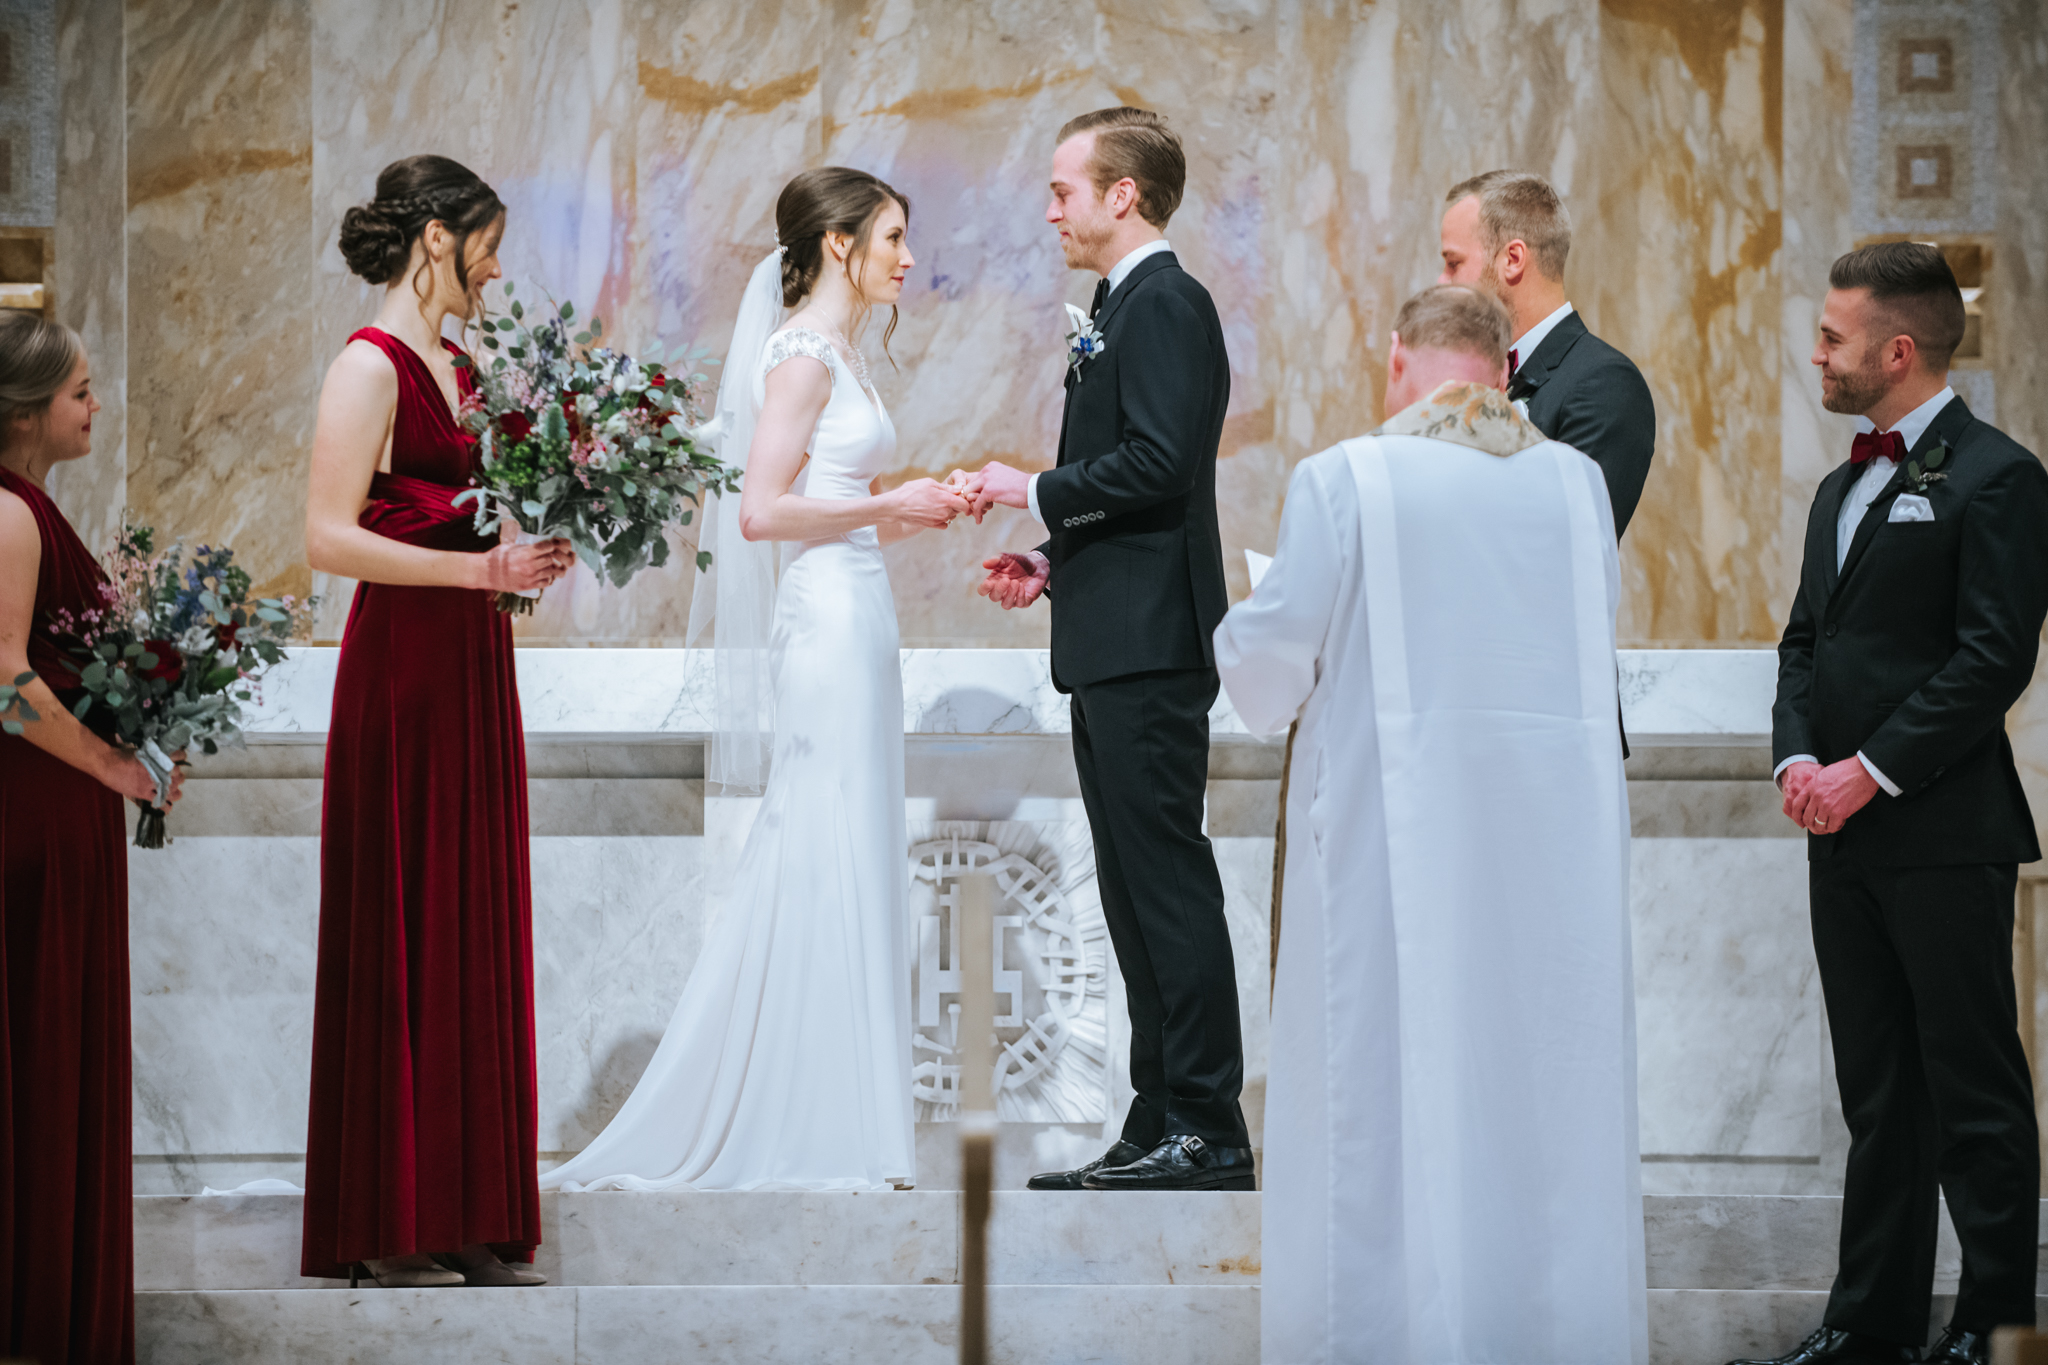 Church of Gesu Wedding55.JPG